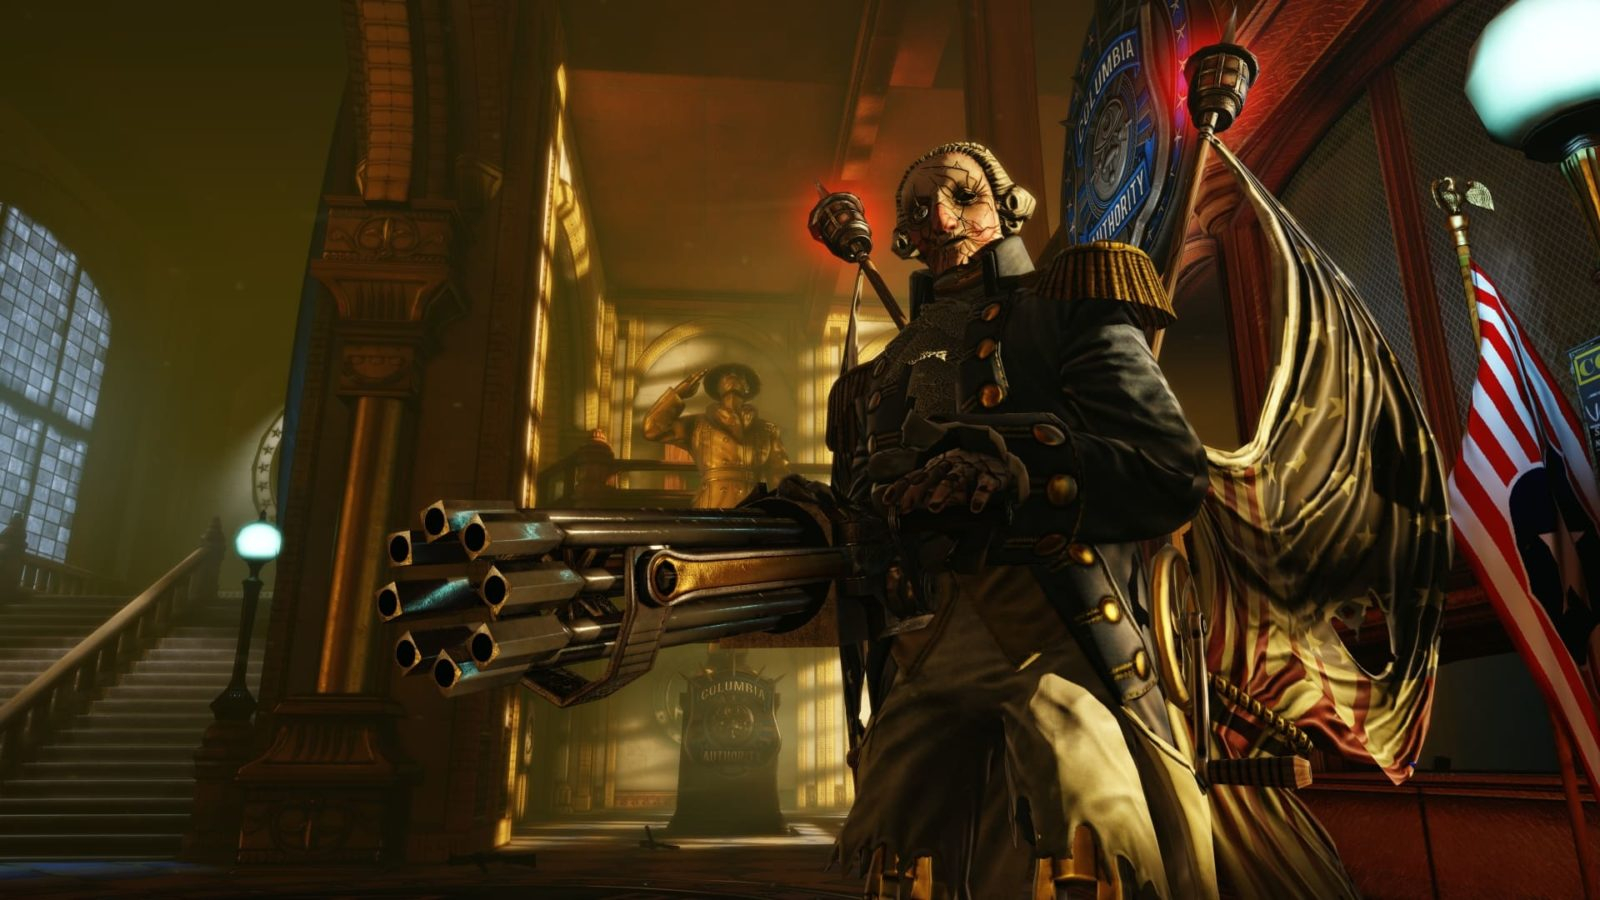 The Best PC Games 2013: 5 Winners